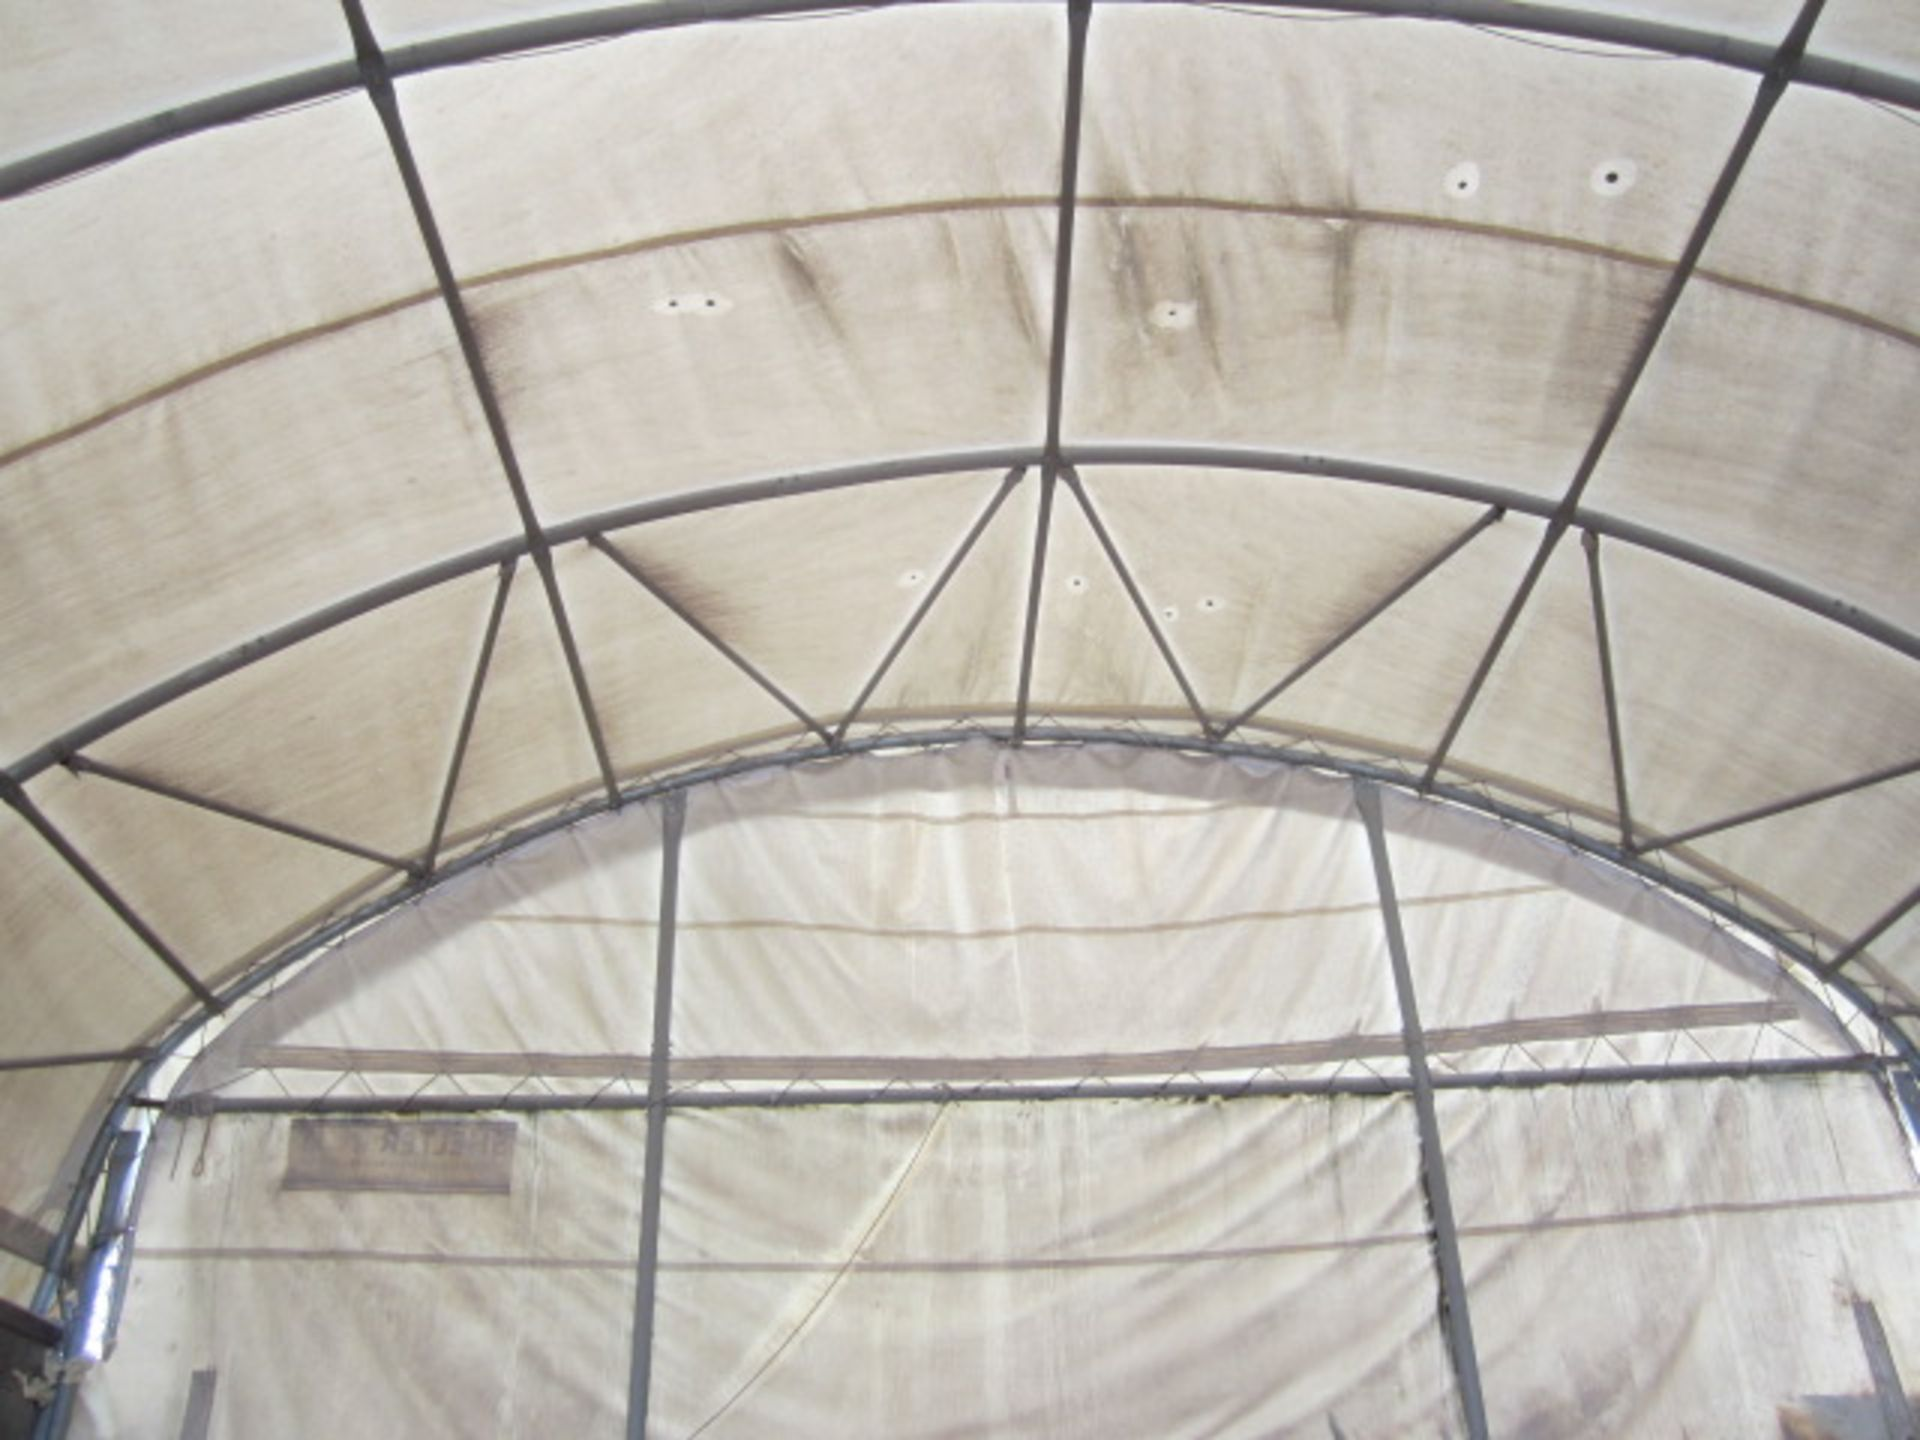 Shelter - IT portable industrial canopy, tubular frame, approx. 40ft length x 22ft width x 20ft - Image 4 of 6